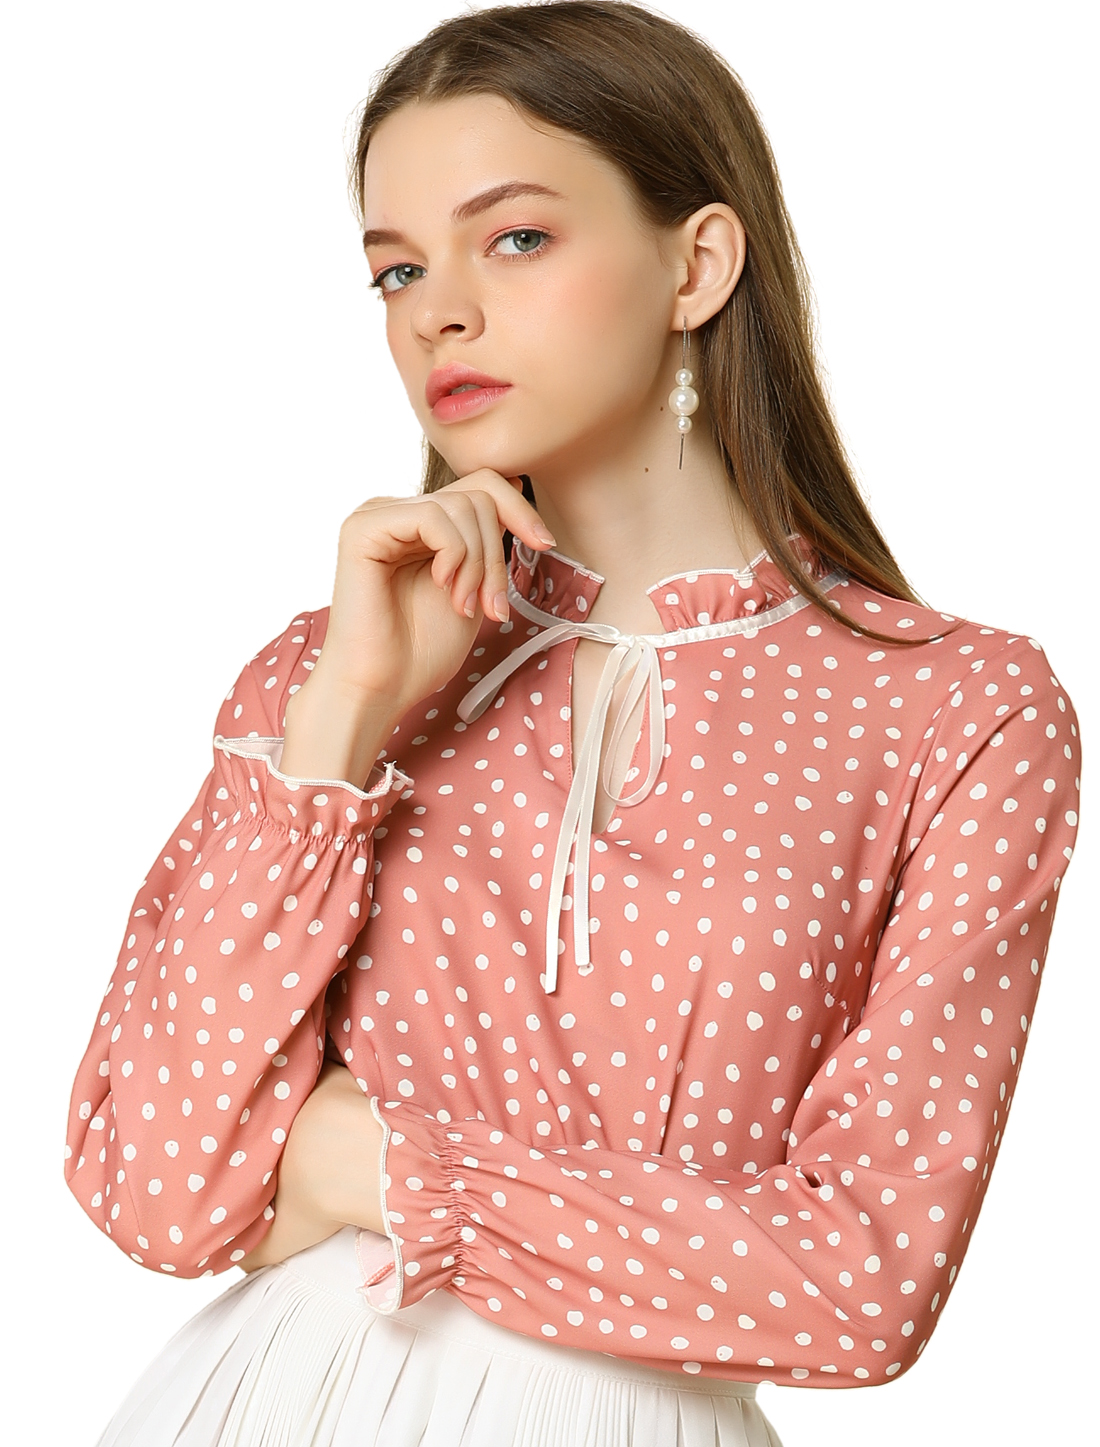 Allegra K Women's Tie Ruffled Neck Polka Dots Blouse Bell Sleeves Tops Pink L